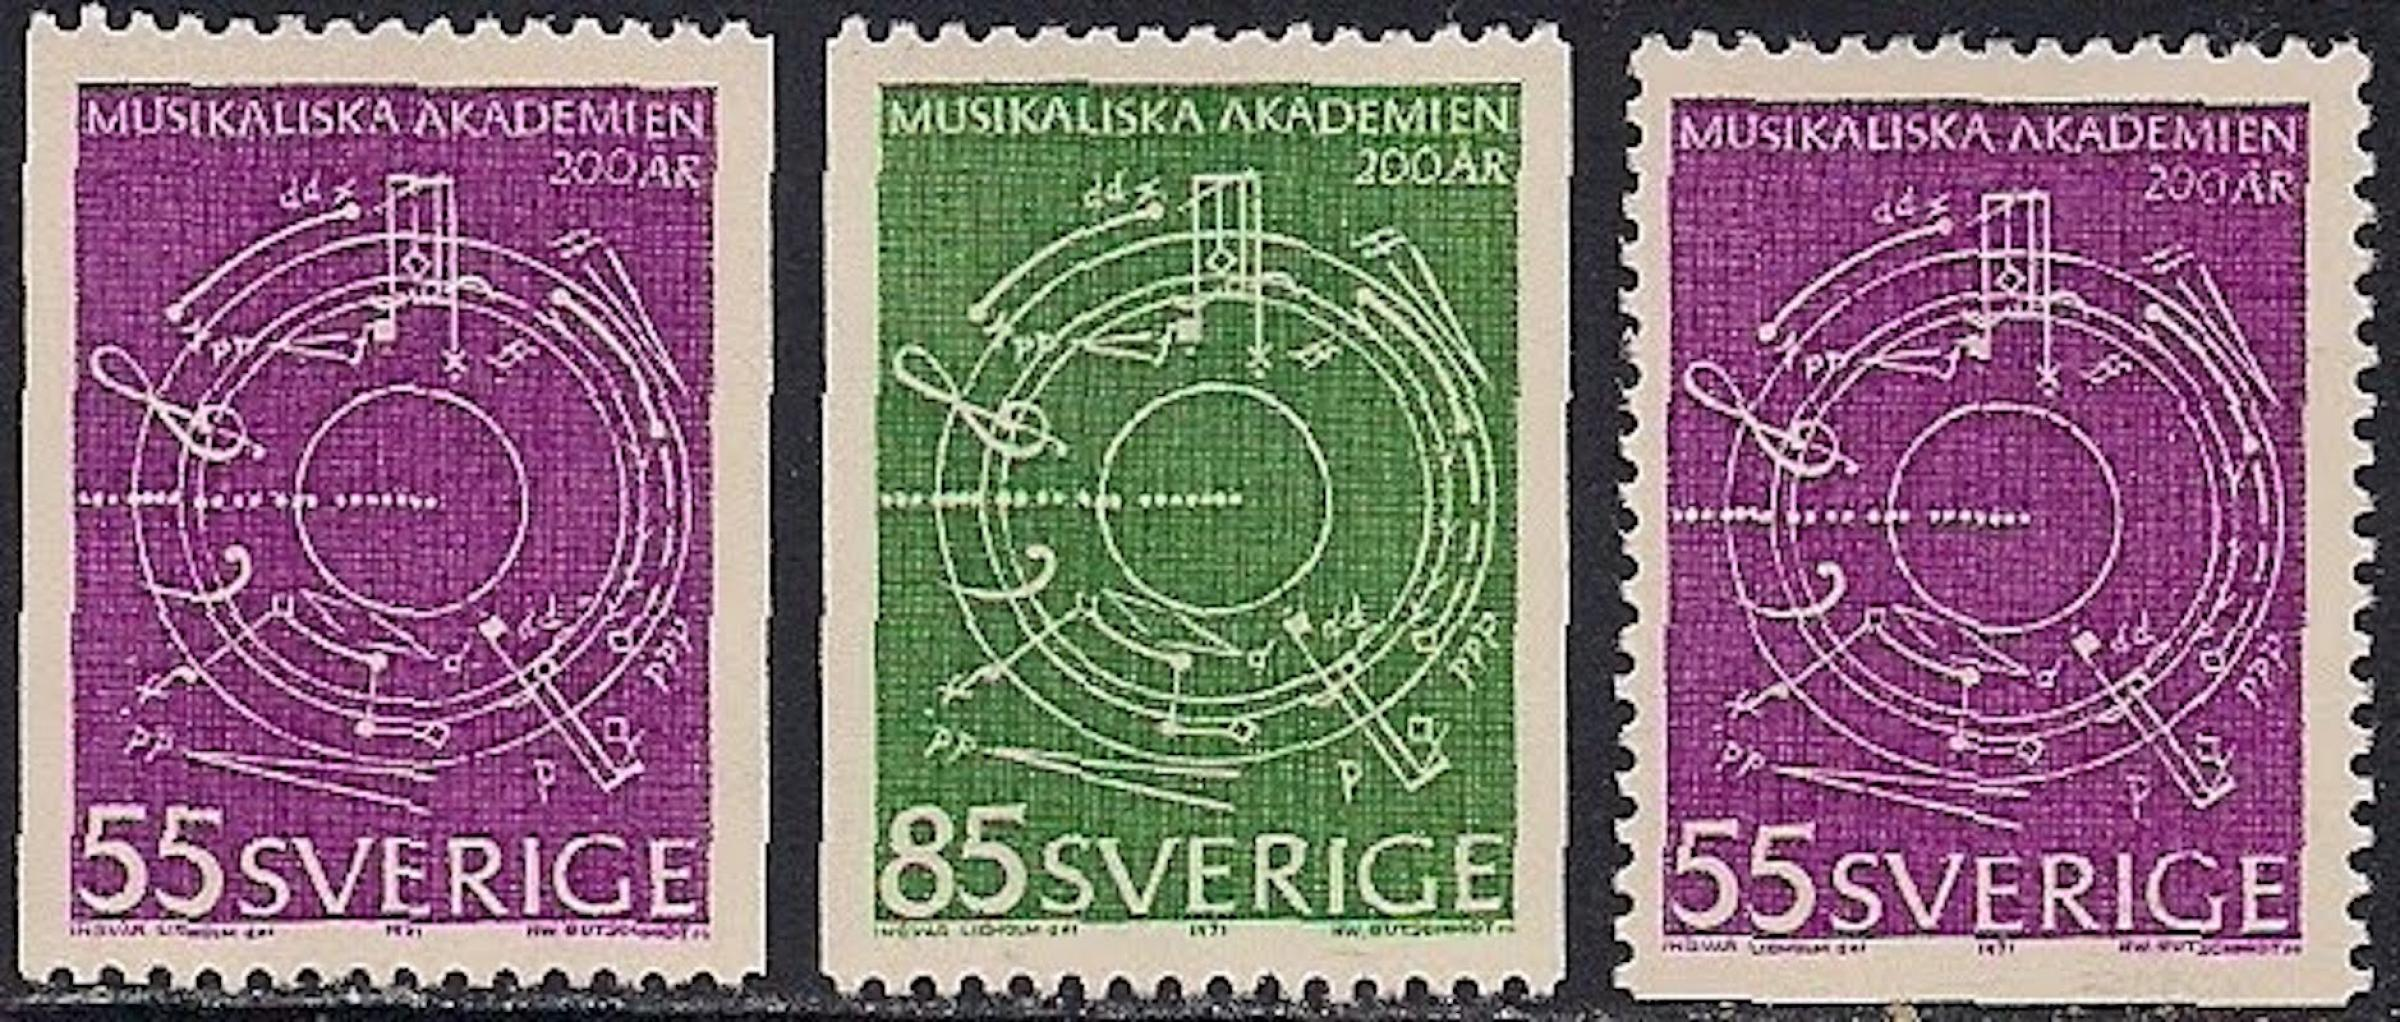 Lidholm Stamp Music